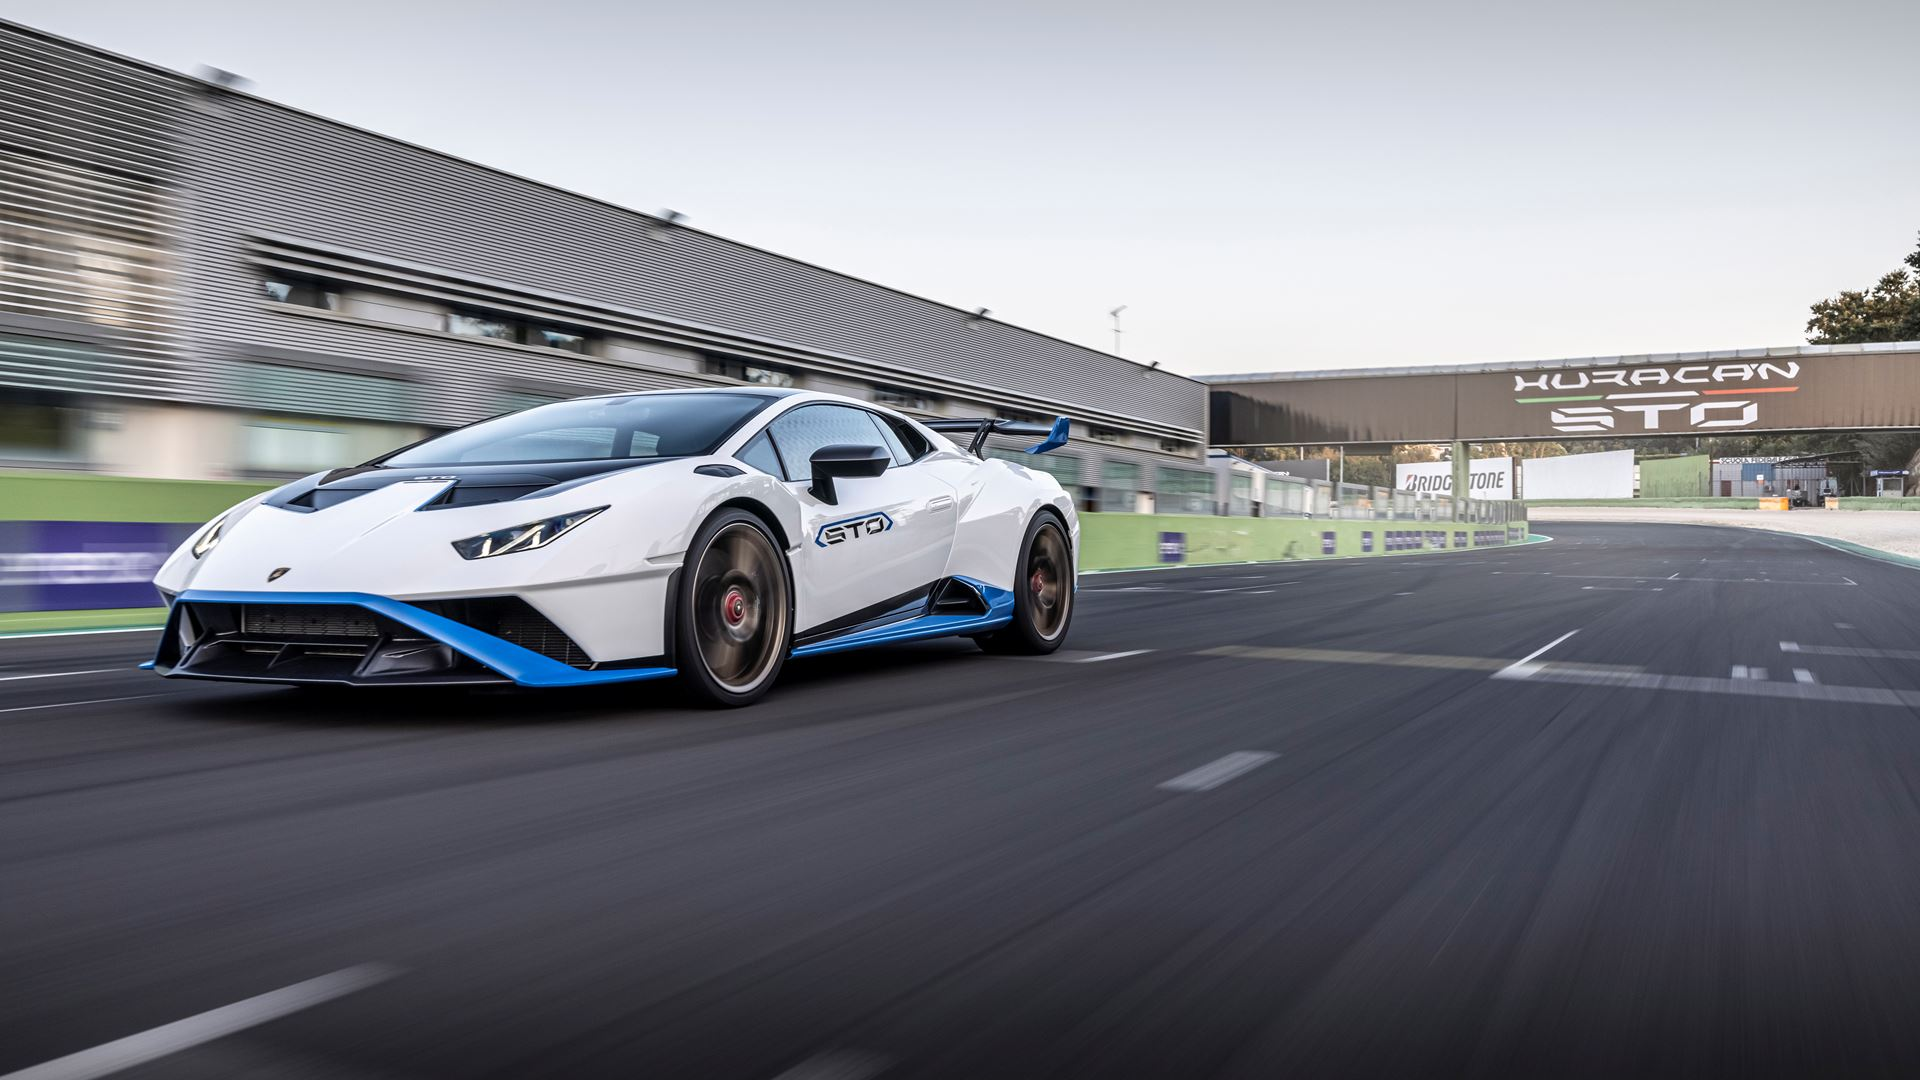 Lamborghini Huracán STO finally unleashed First test-drives in Rome and at the Autodromo Piero Taruffi in Vallelunga - Image 6